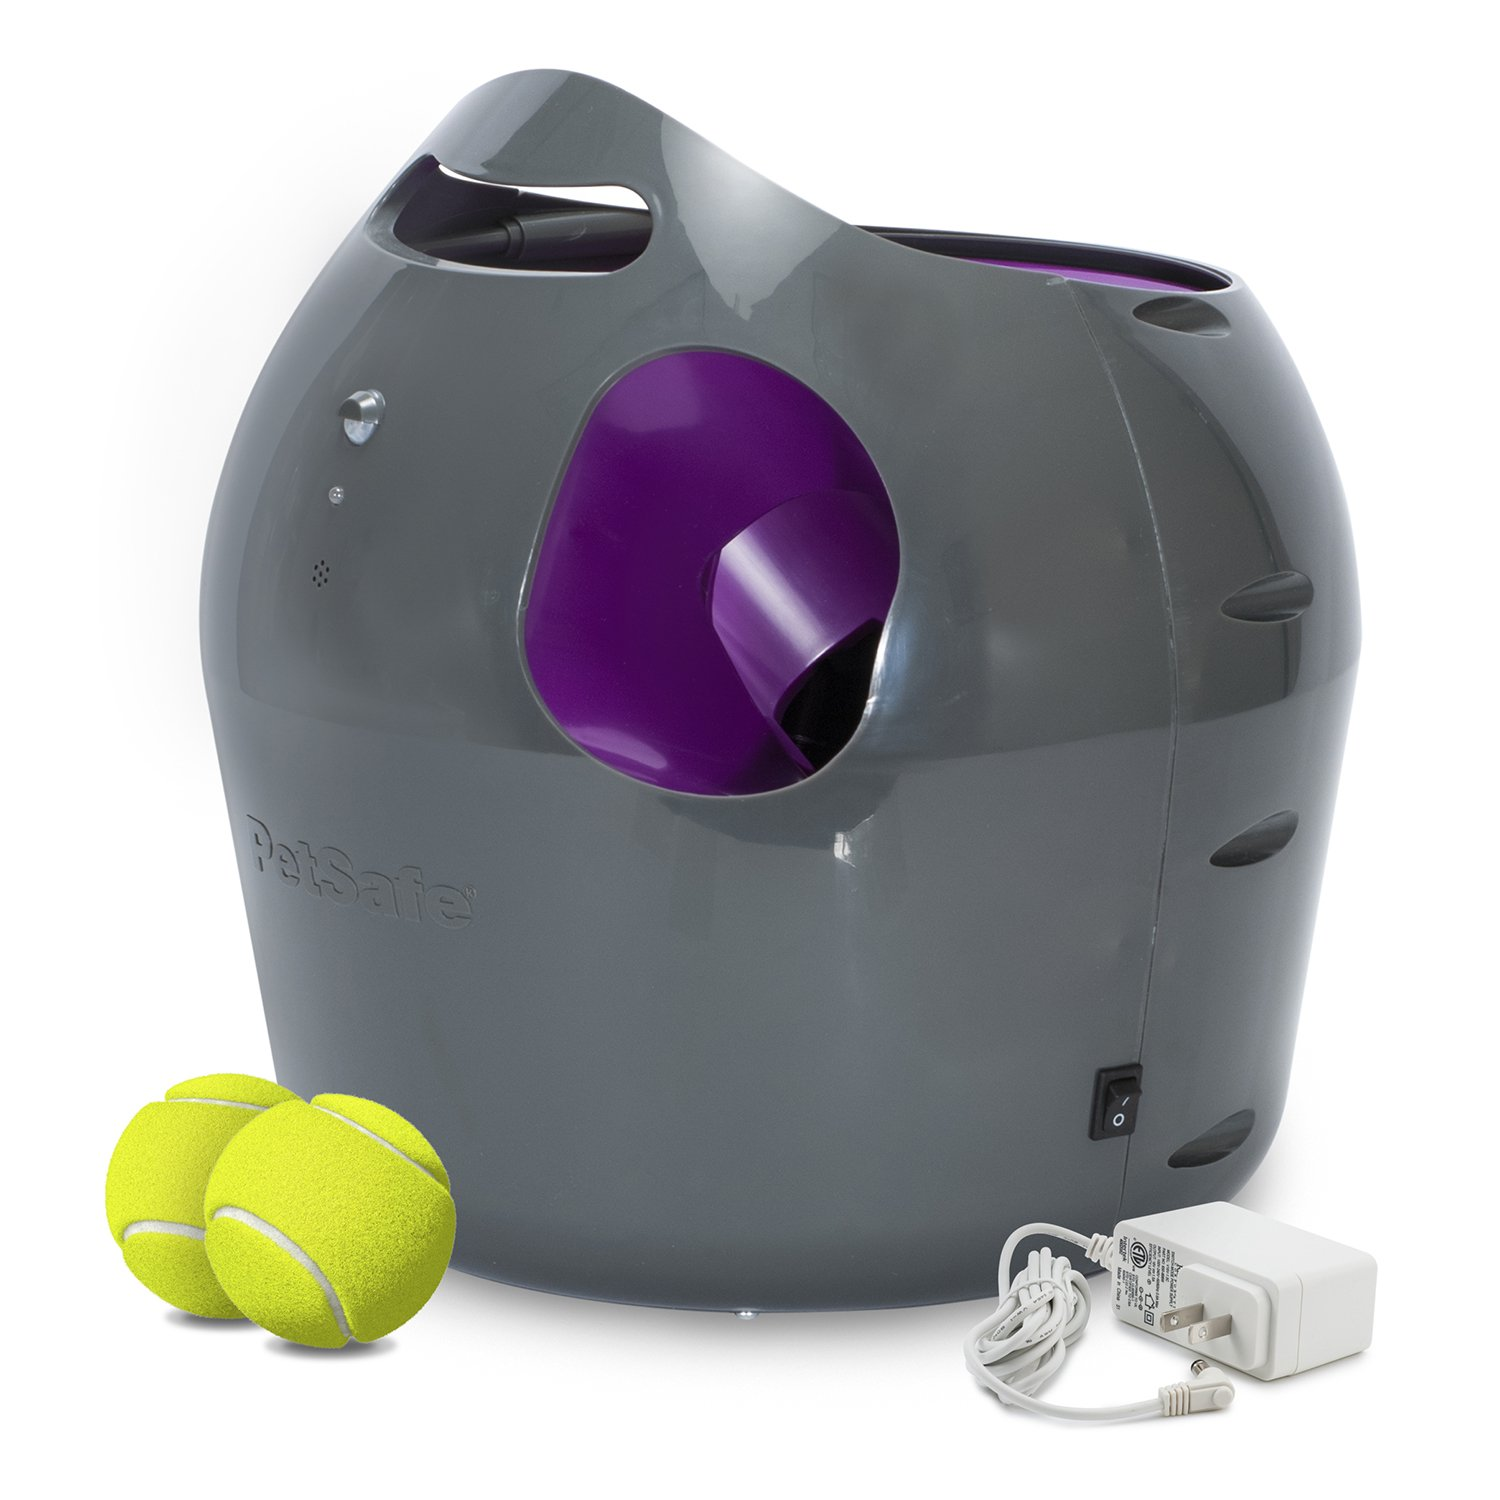 When we develop new iFetch dog toys, mental stimulation is a key component. The combination of physical activity with mental activity is at play with all of our current products - the automatic ball launchers and the Frenzy brain game.